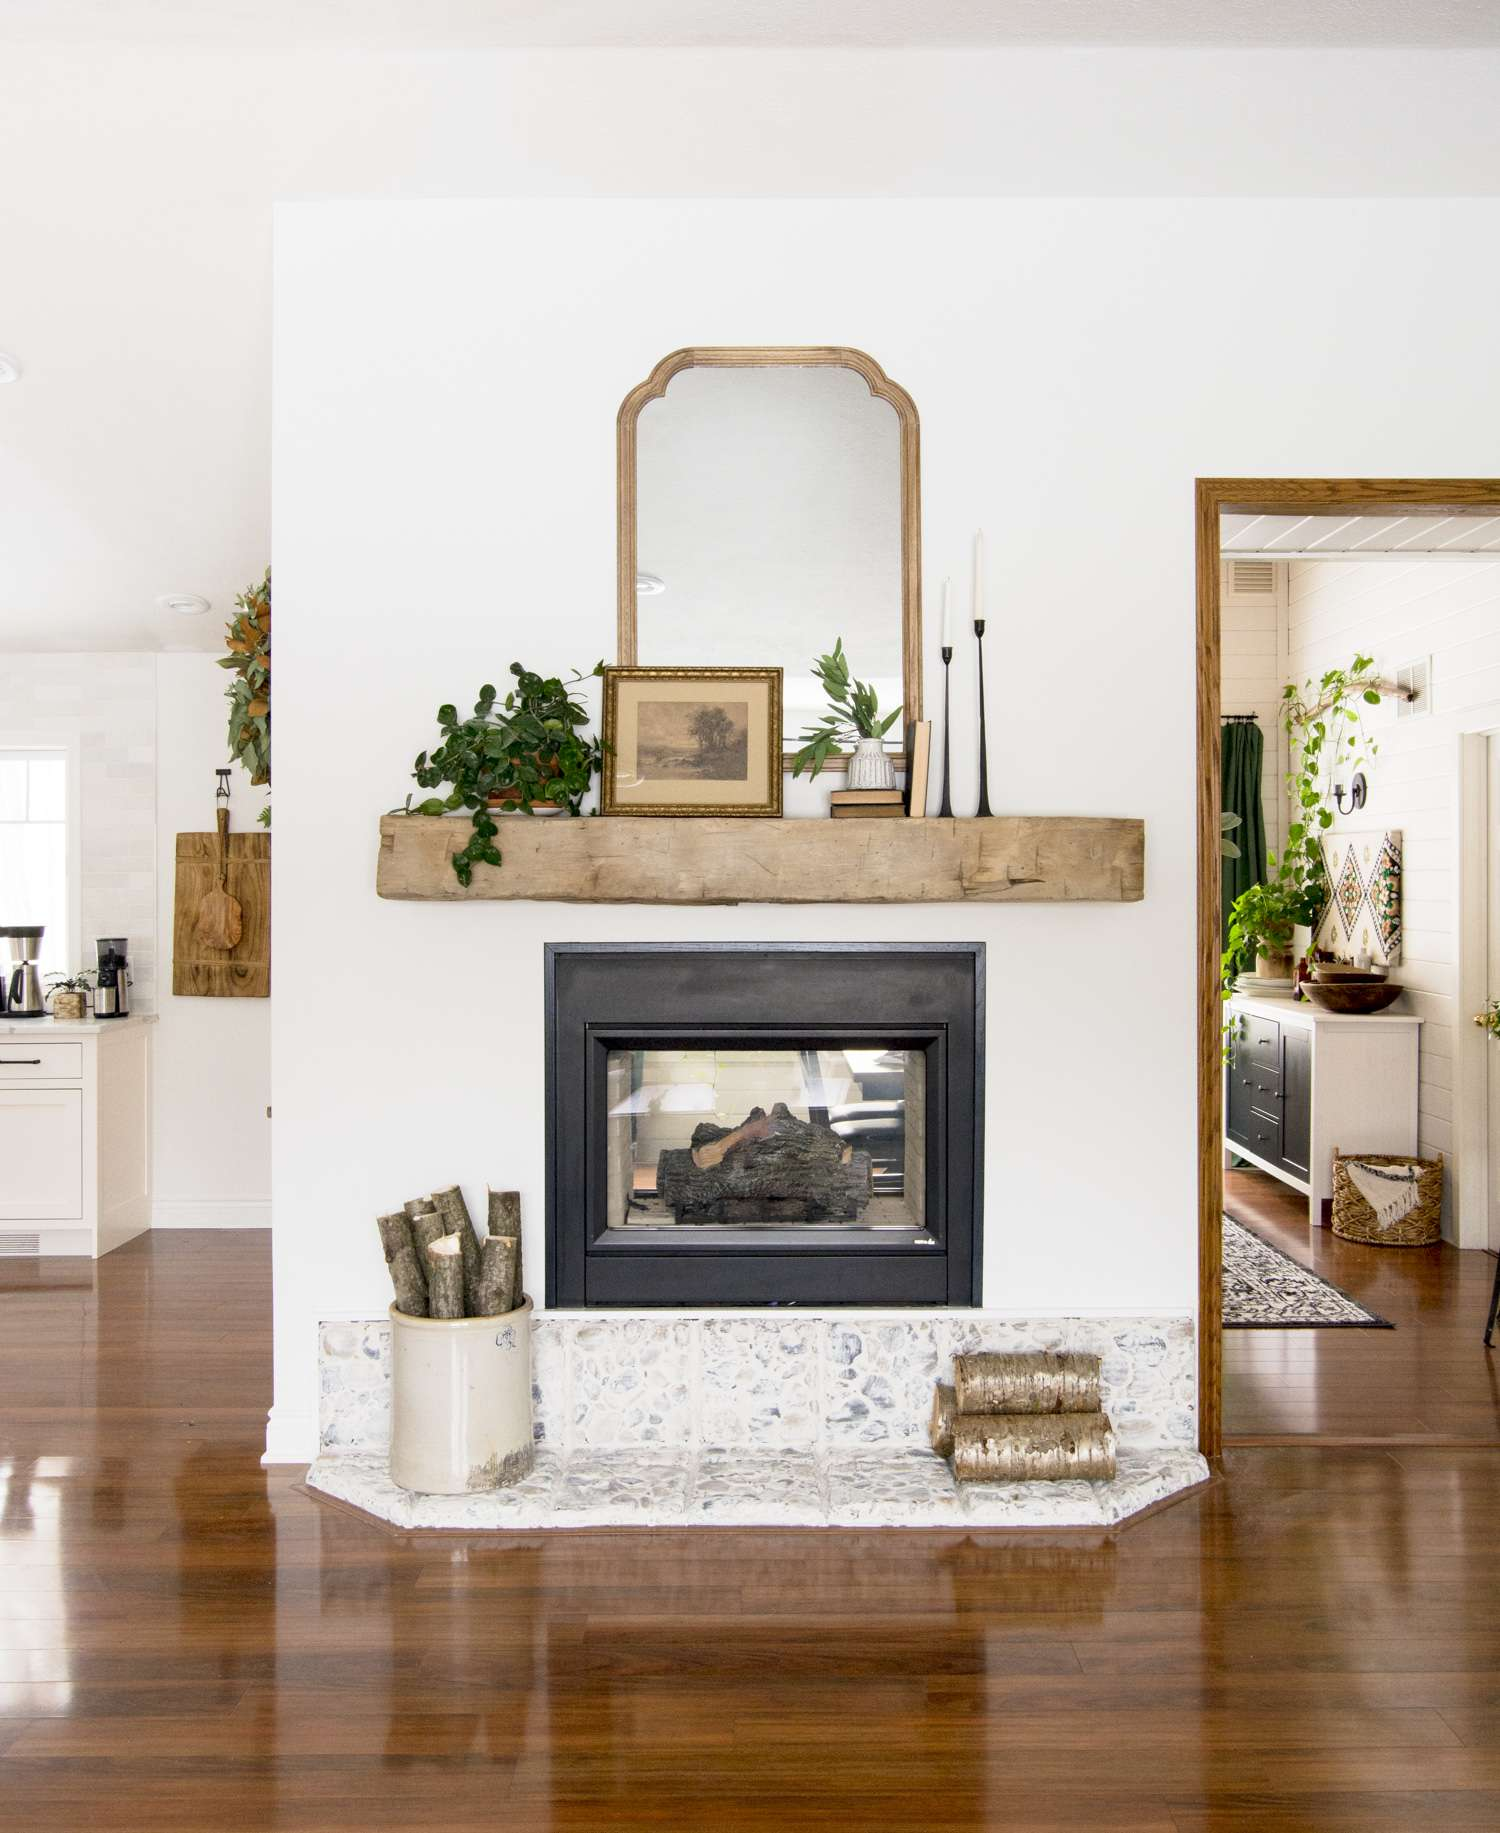 Modern farmhouse fireplace mantel decor.